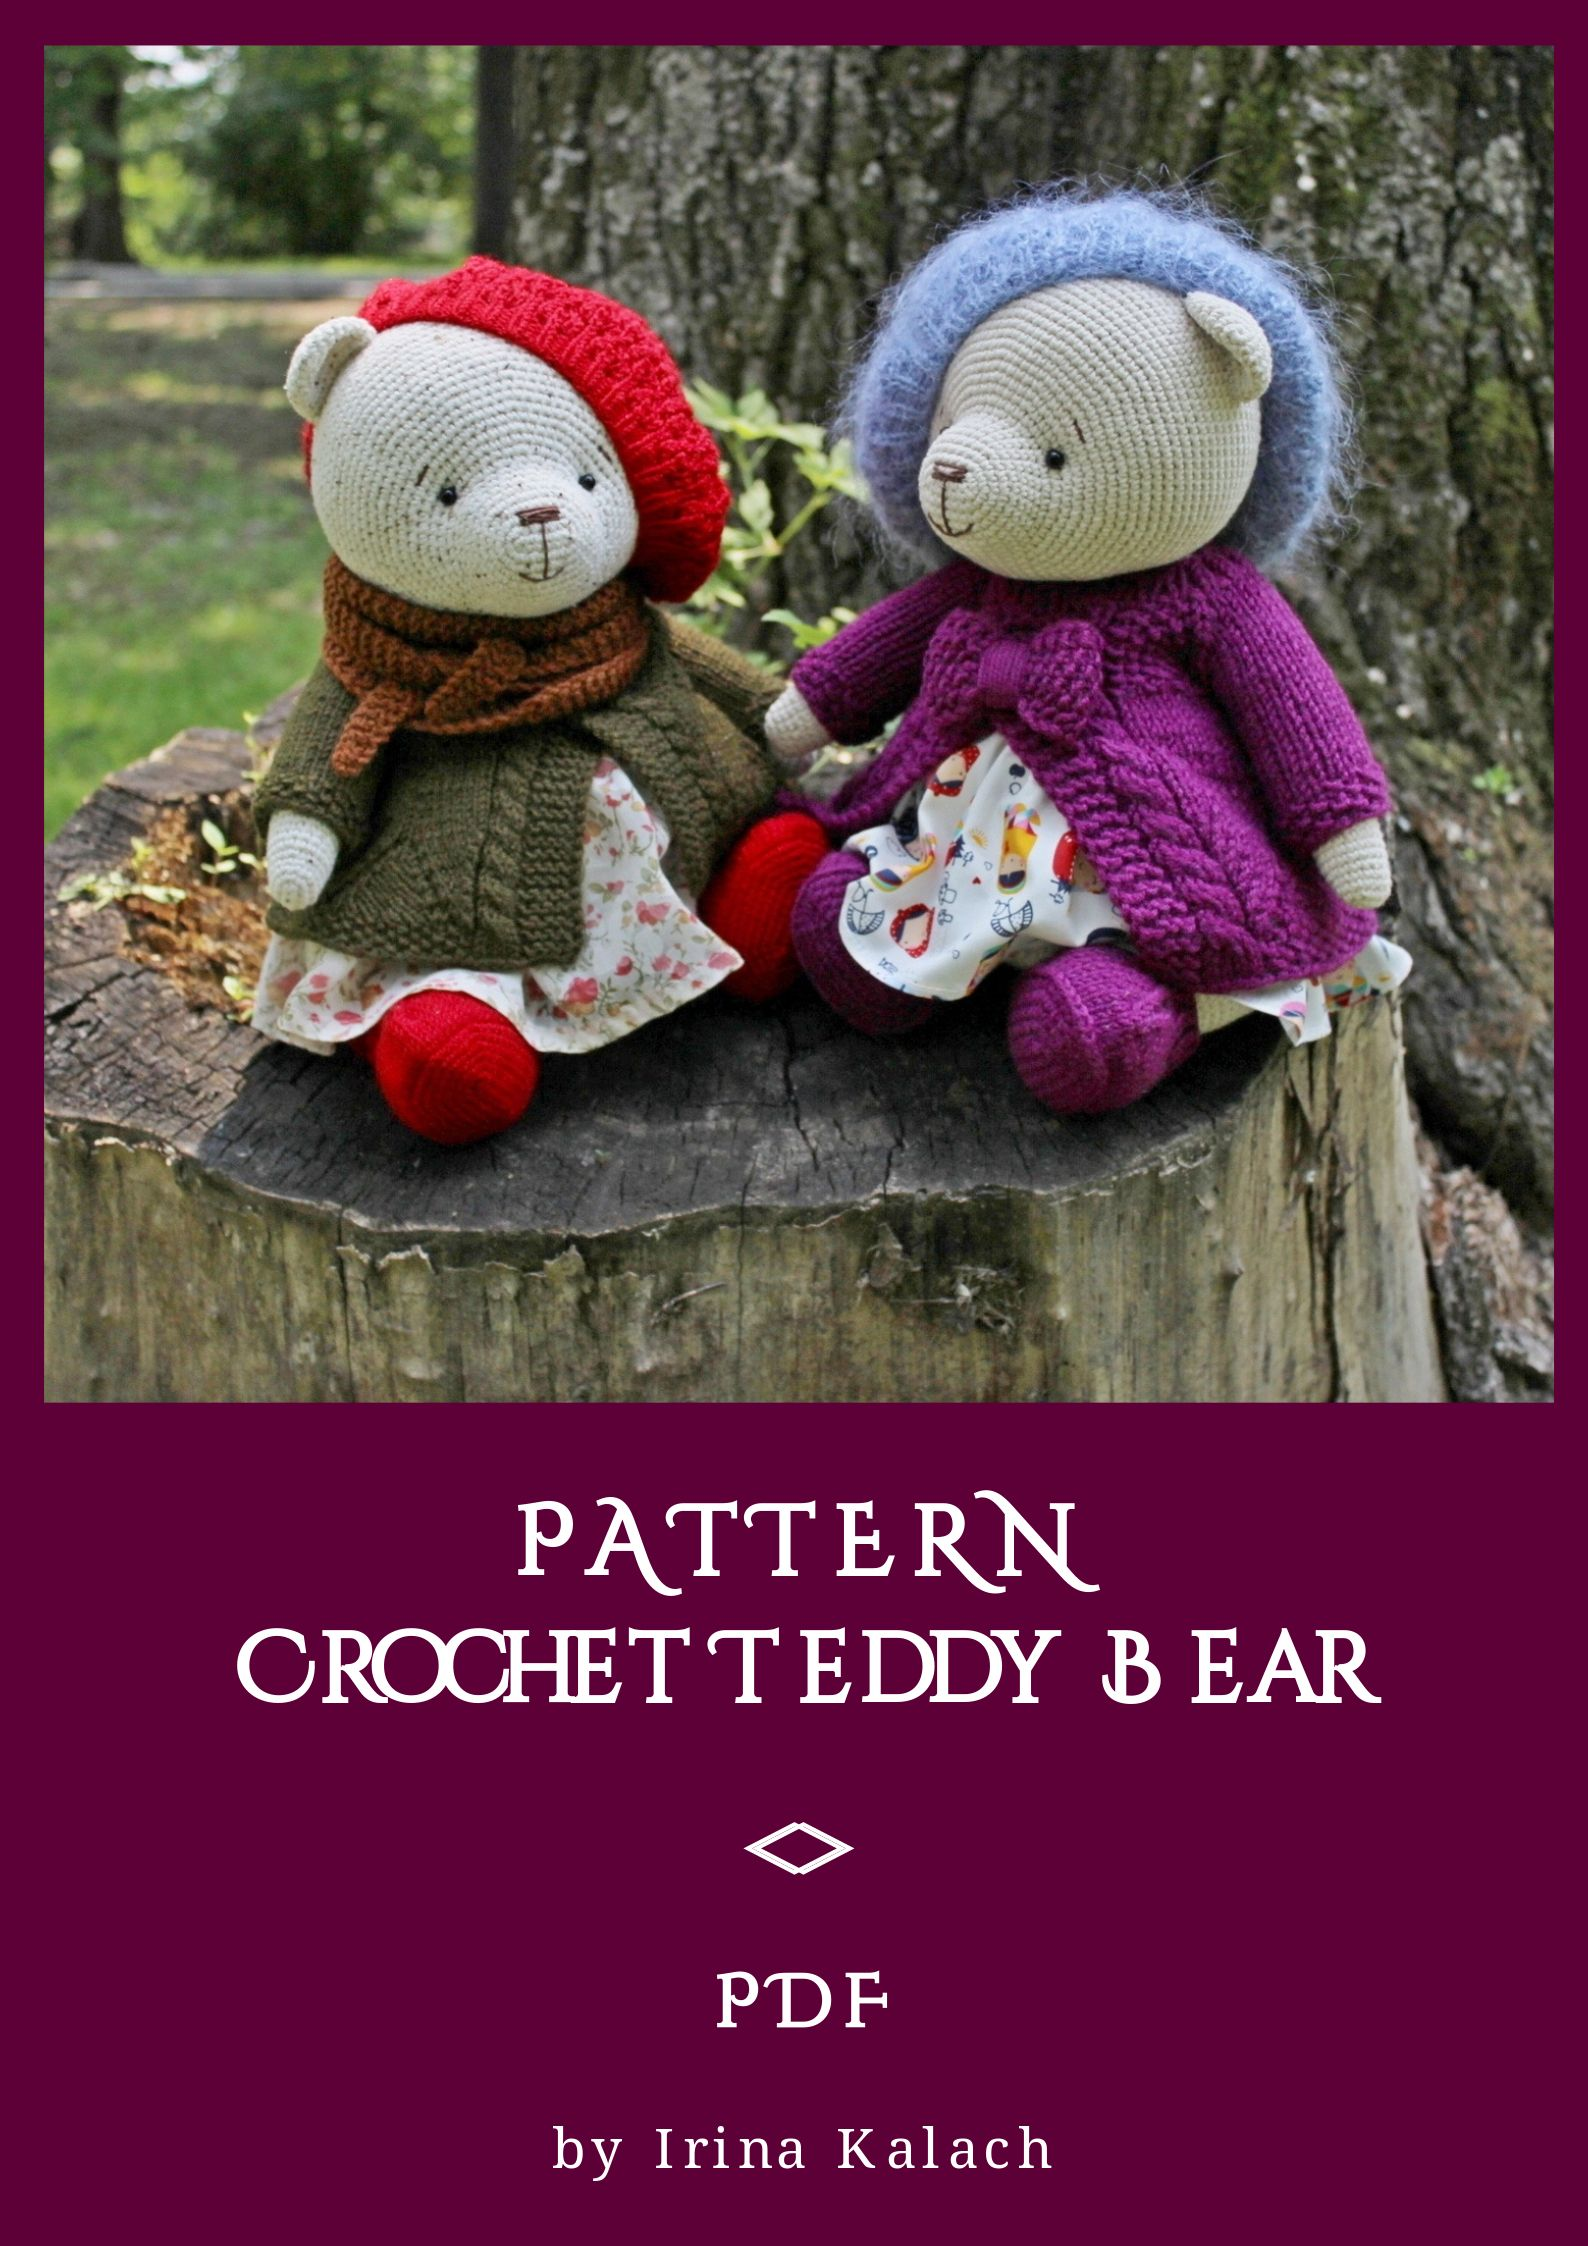 PATTERN Crochet Teddy bear. PATTERN Amigurumi Teddy bear. PATTERN Teddy Bears Outfits Girls #crochetteddybears